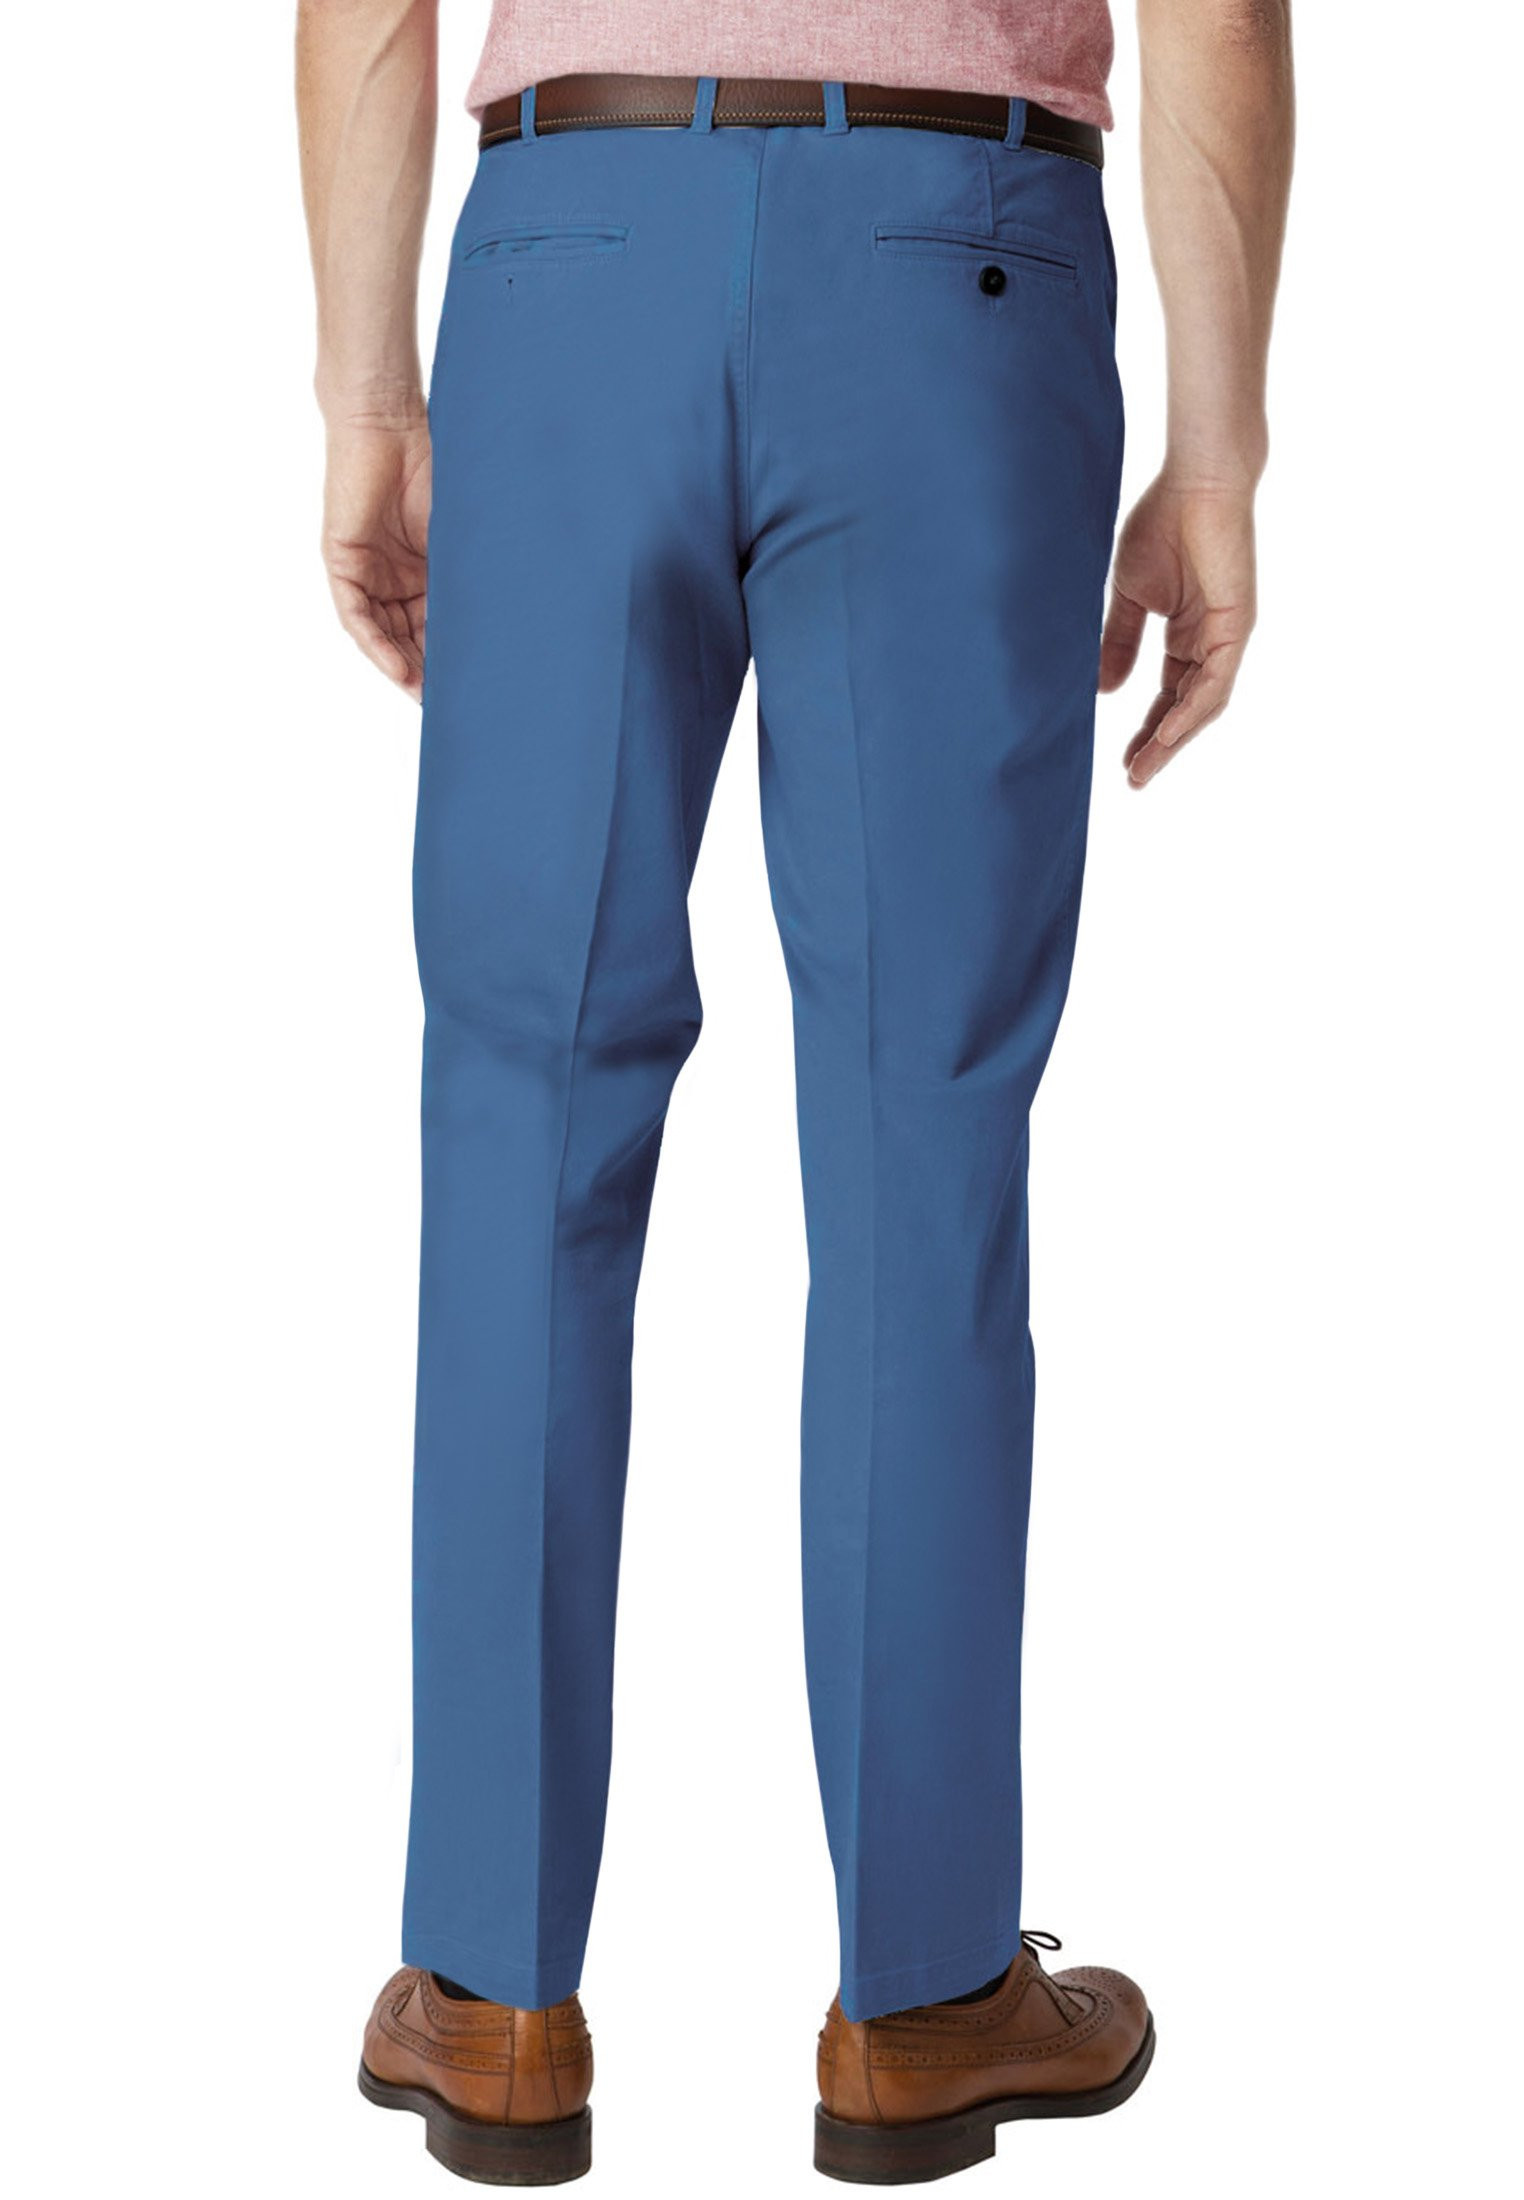 Ribblesdale Sky Blue Tailored Fit Cotton Stretch Summer Trouser